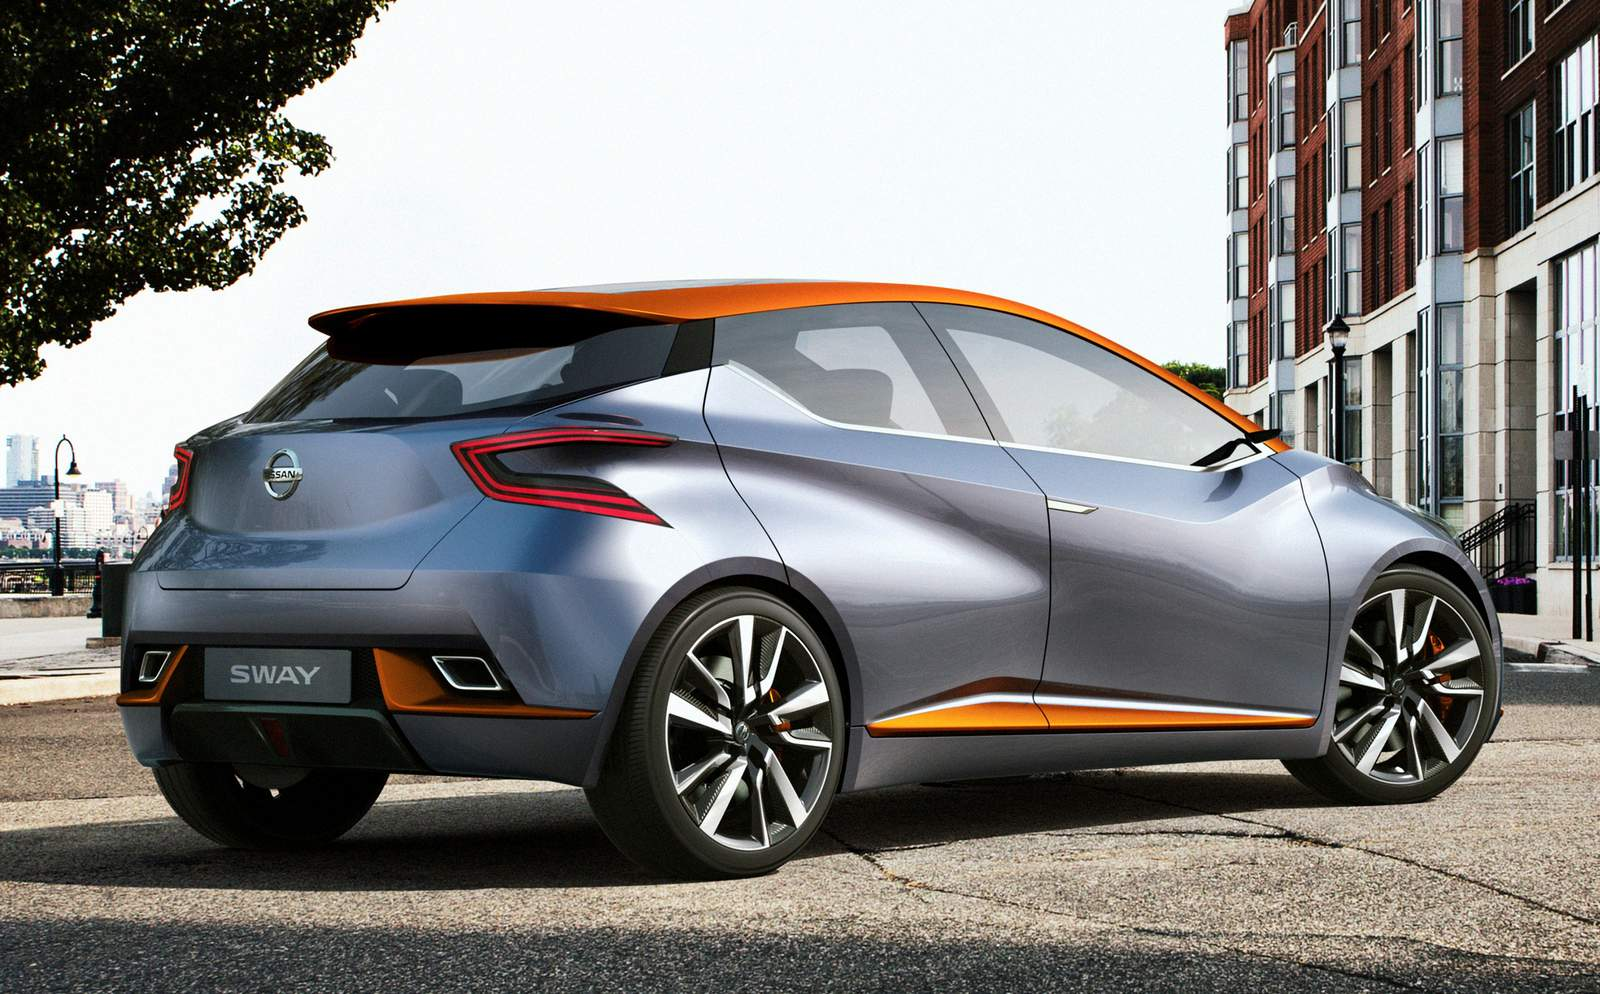 Nissan Sway - New March